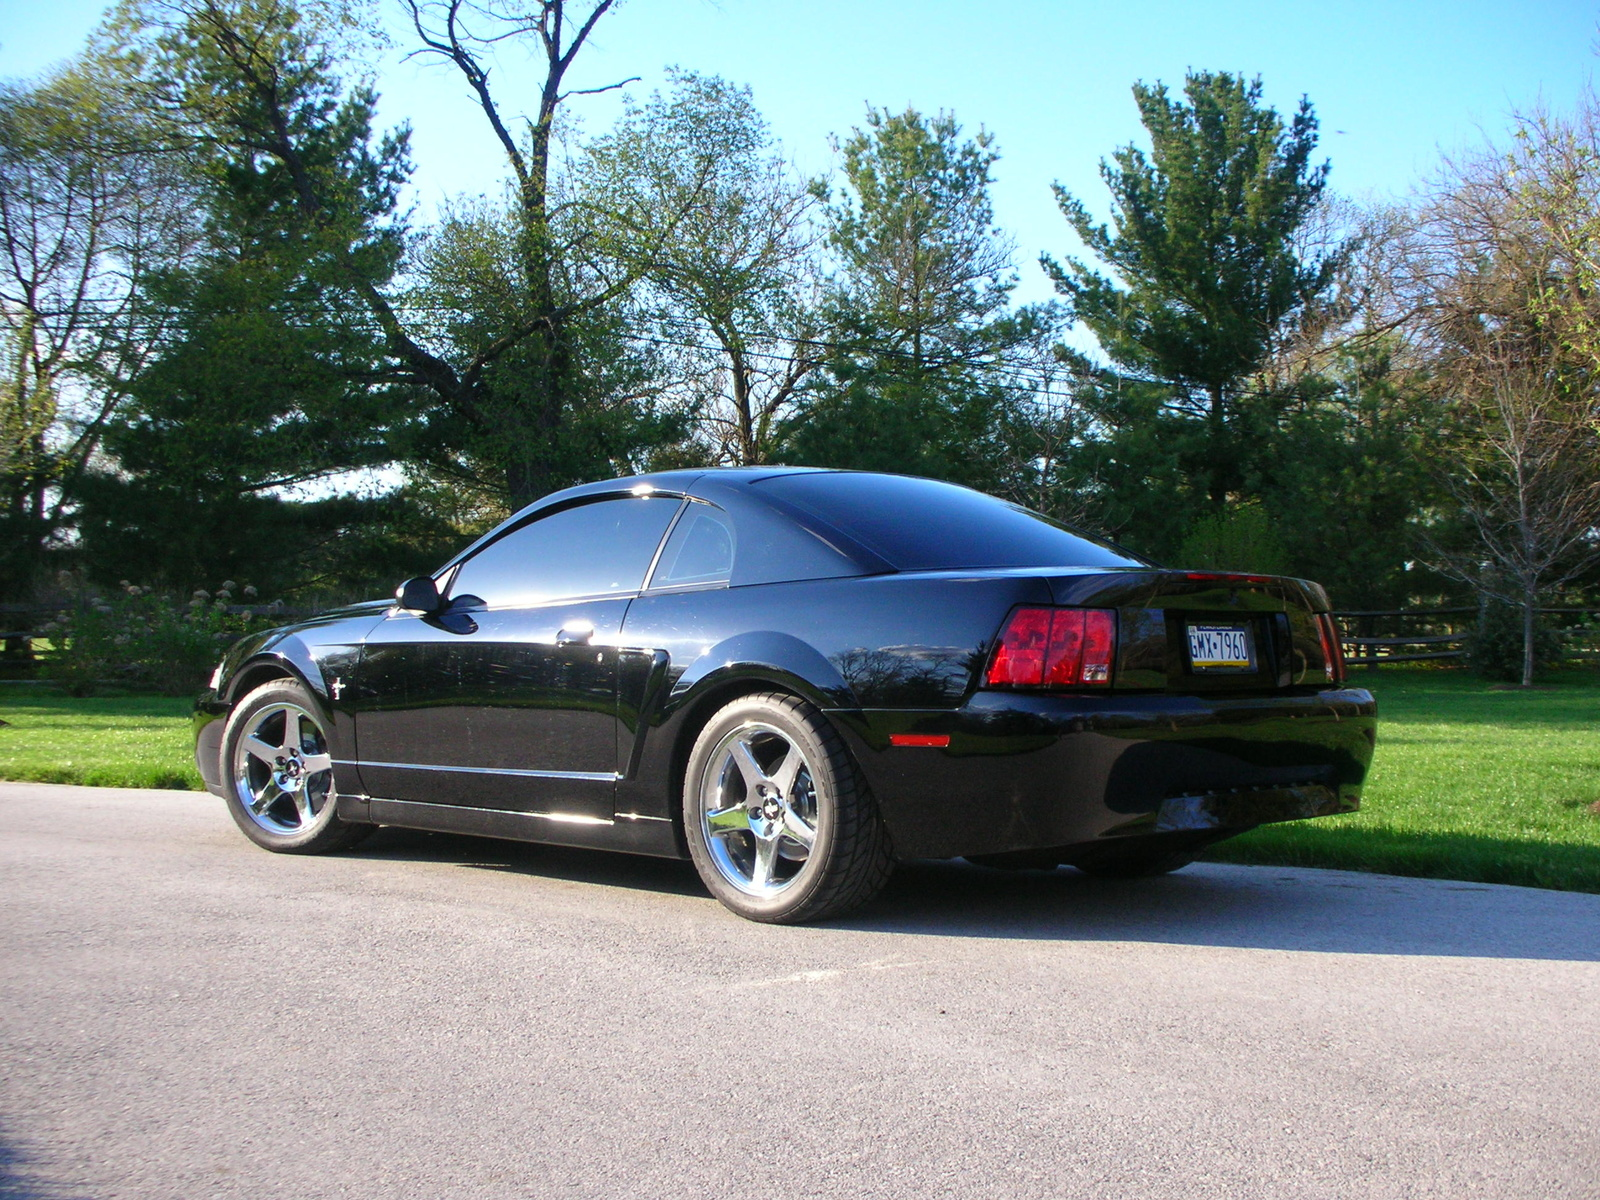 2001 ford mustang svt cobra car wallpaper